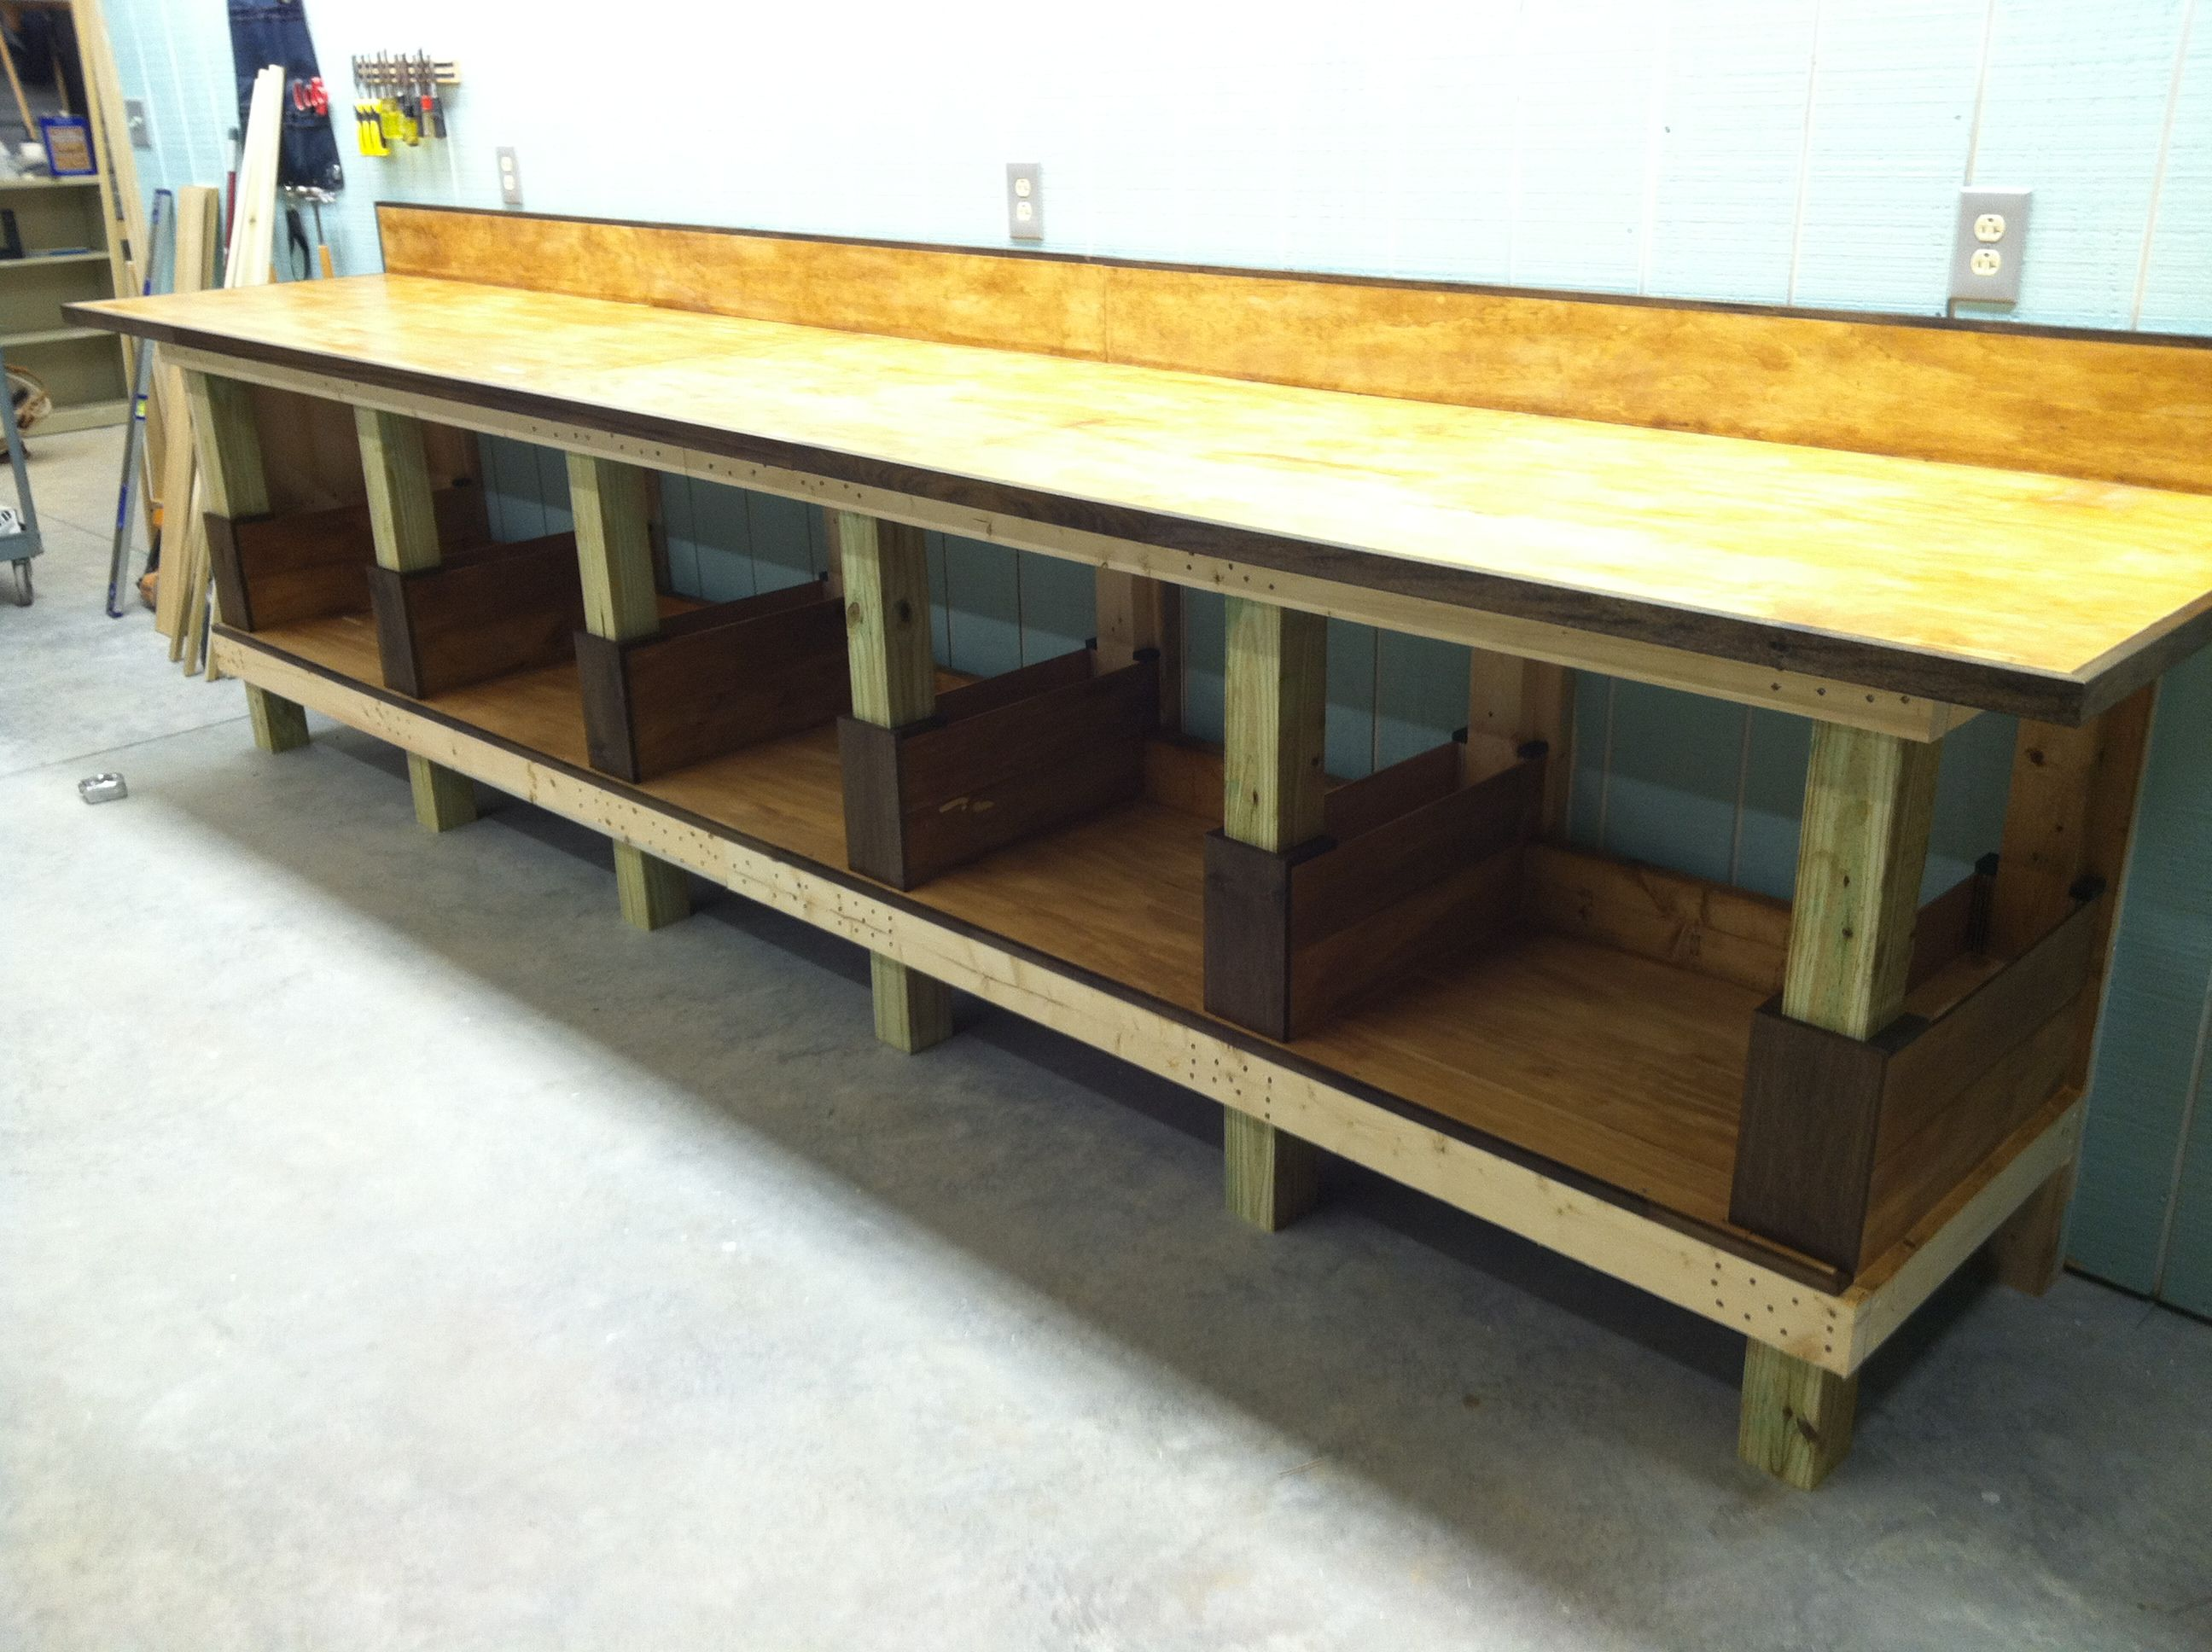 Shop Work Bench With Top And Back Splash Attached Top Is 14ft X Doubled 1 5 Inch 3 4